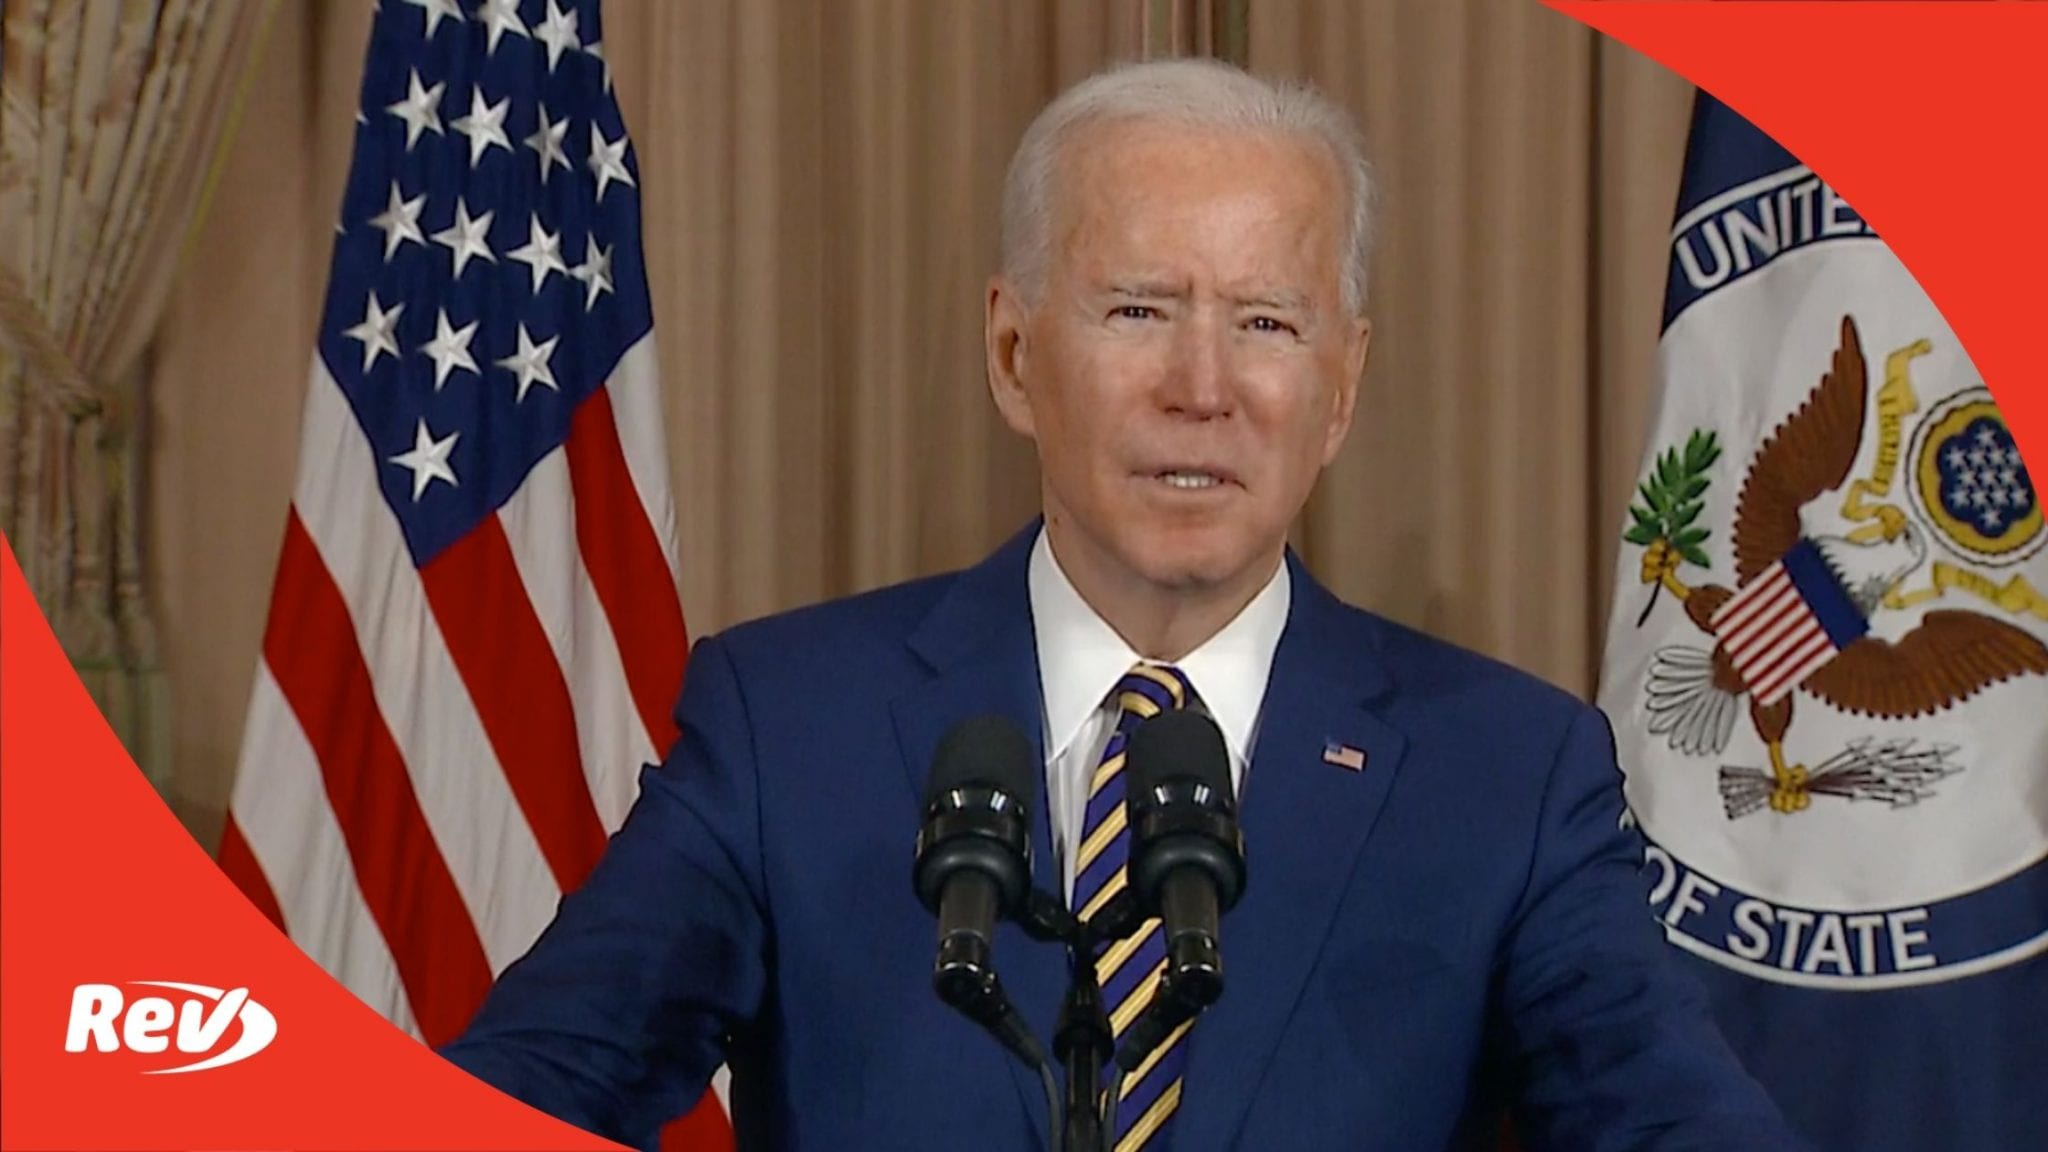 Joe Biden Speech on Foreign Policy Transcript February 4